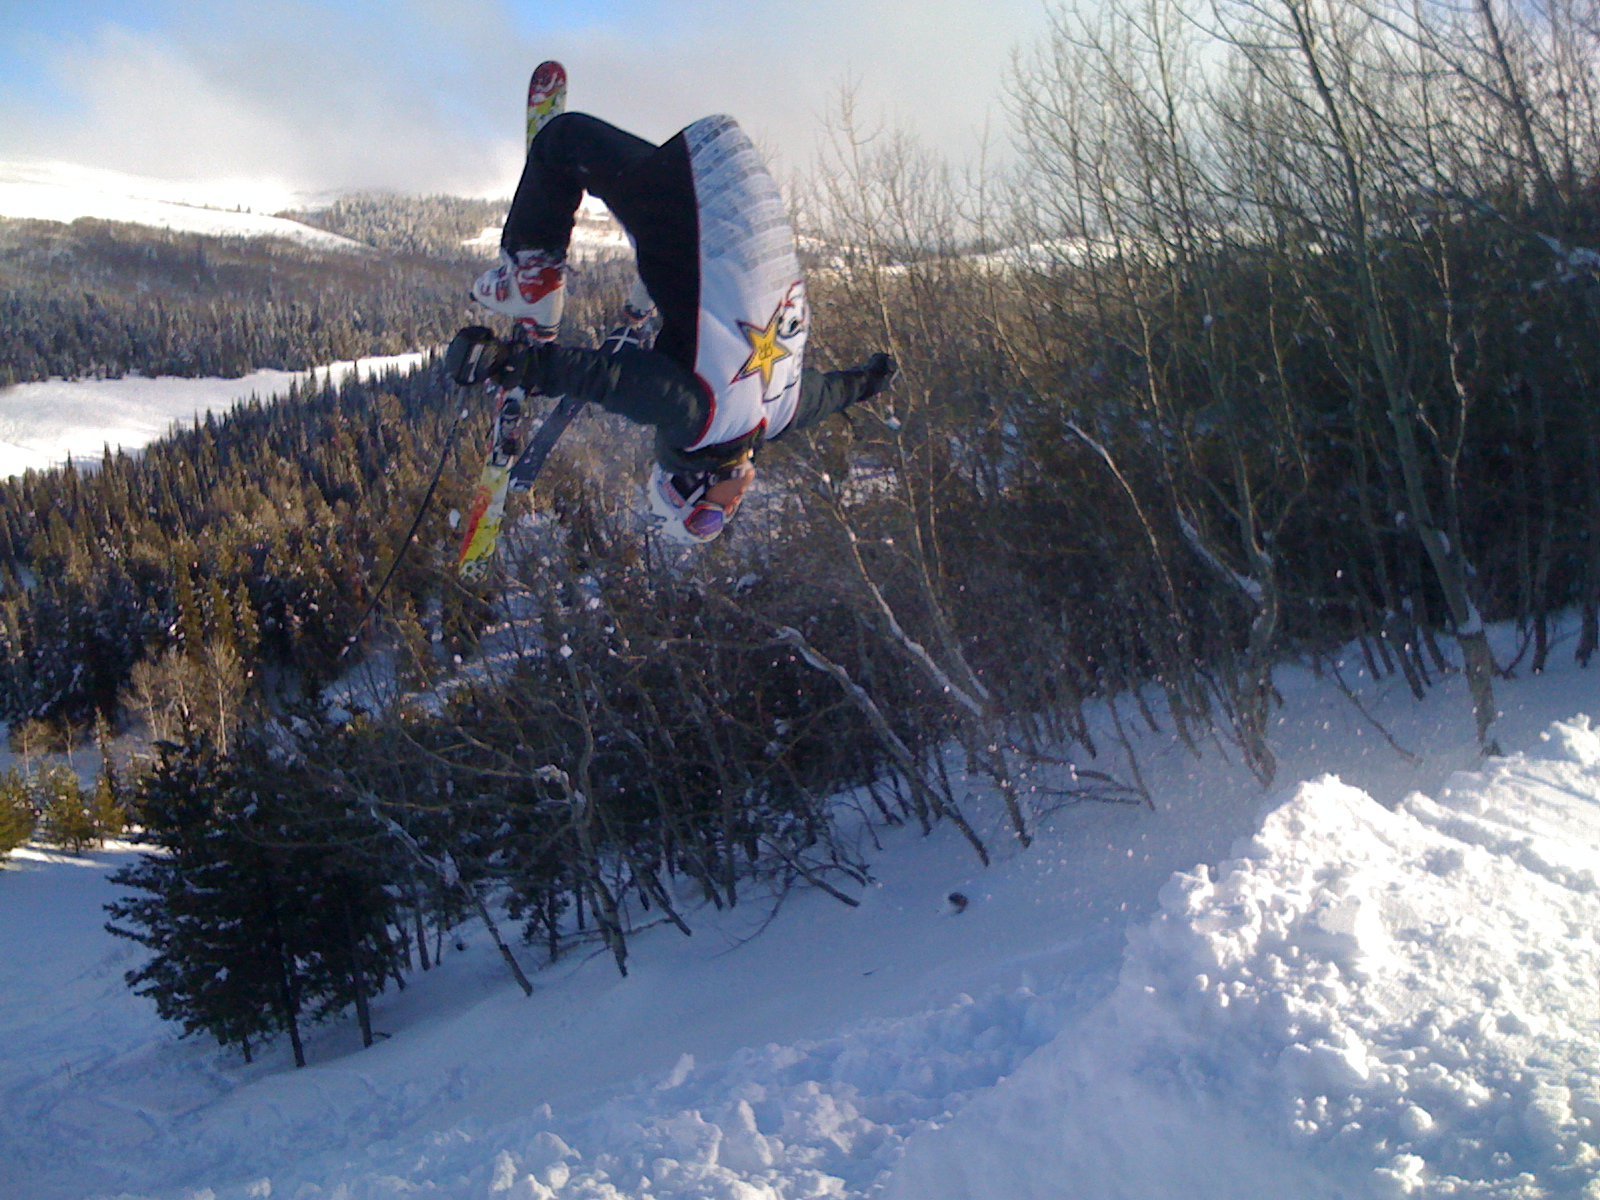 Losing both skis on backflip